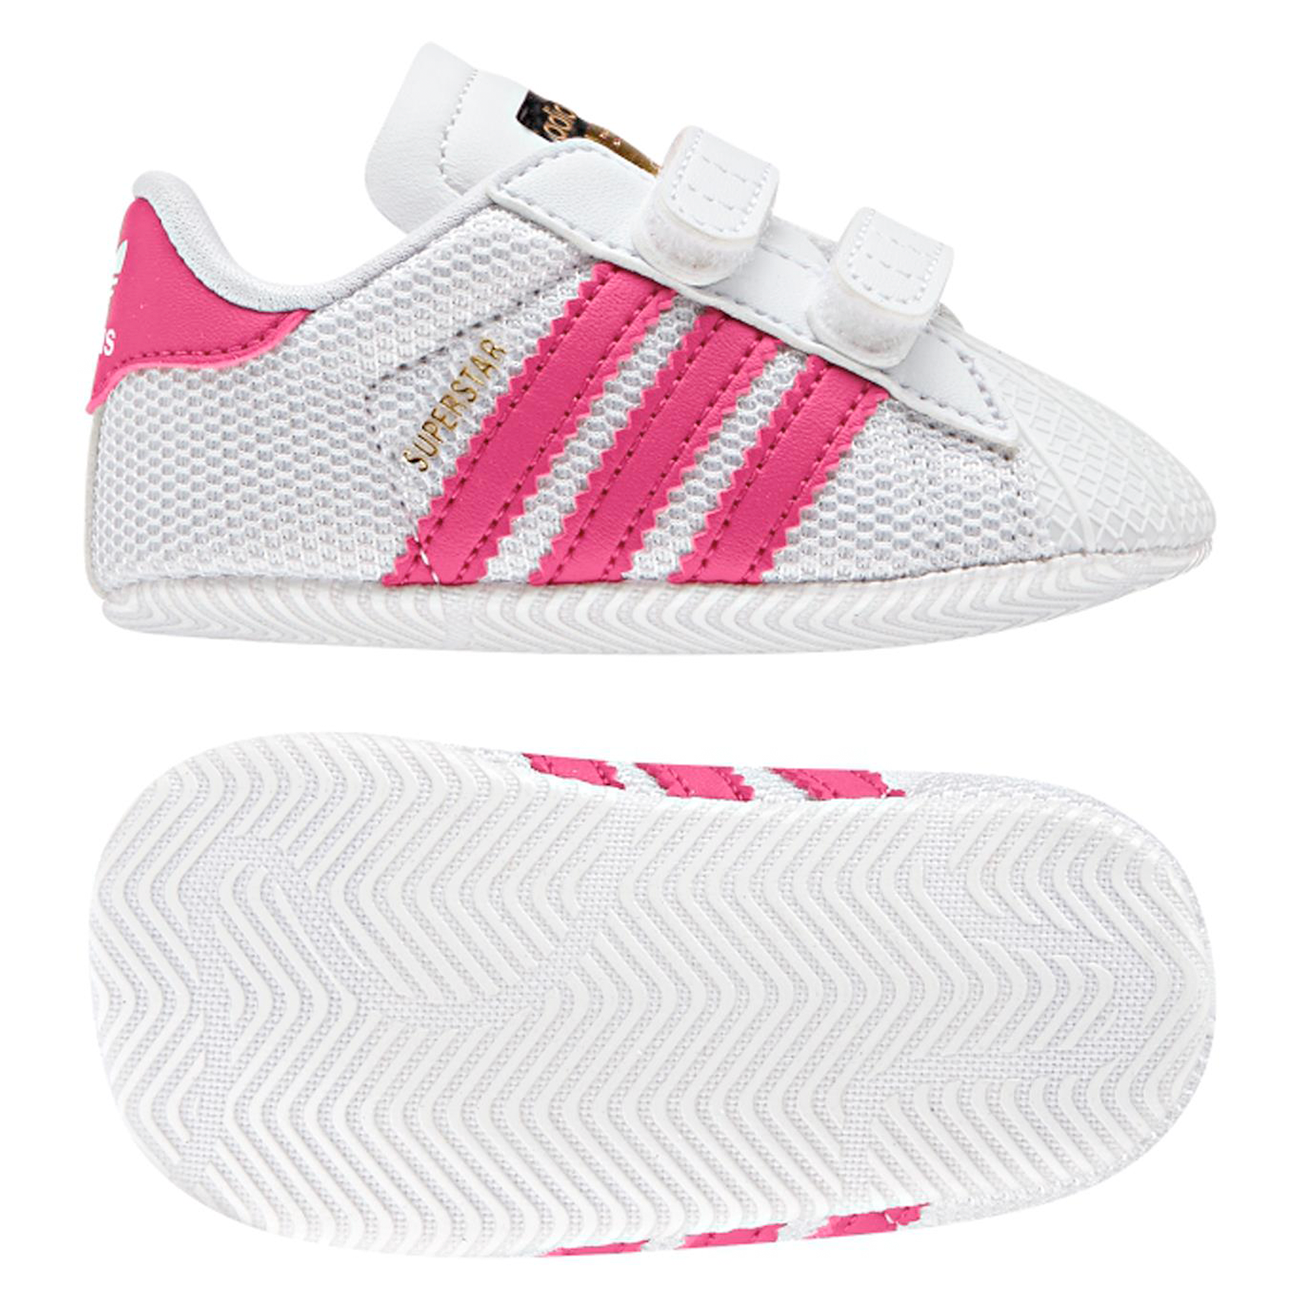 8cd32c5647e adidas Superstar Sneakers White/Pink S79917